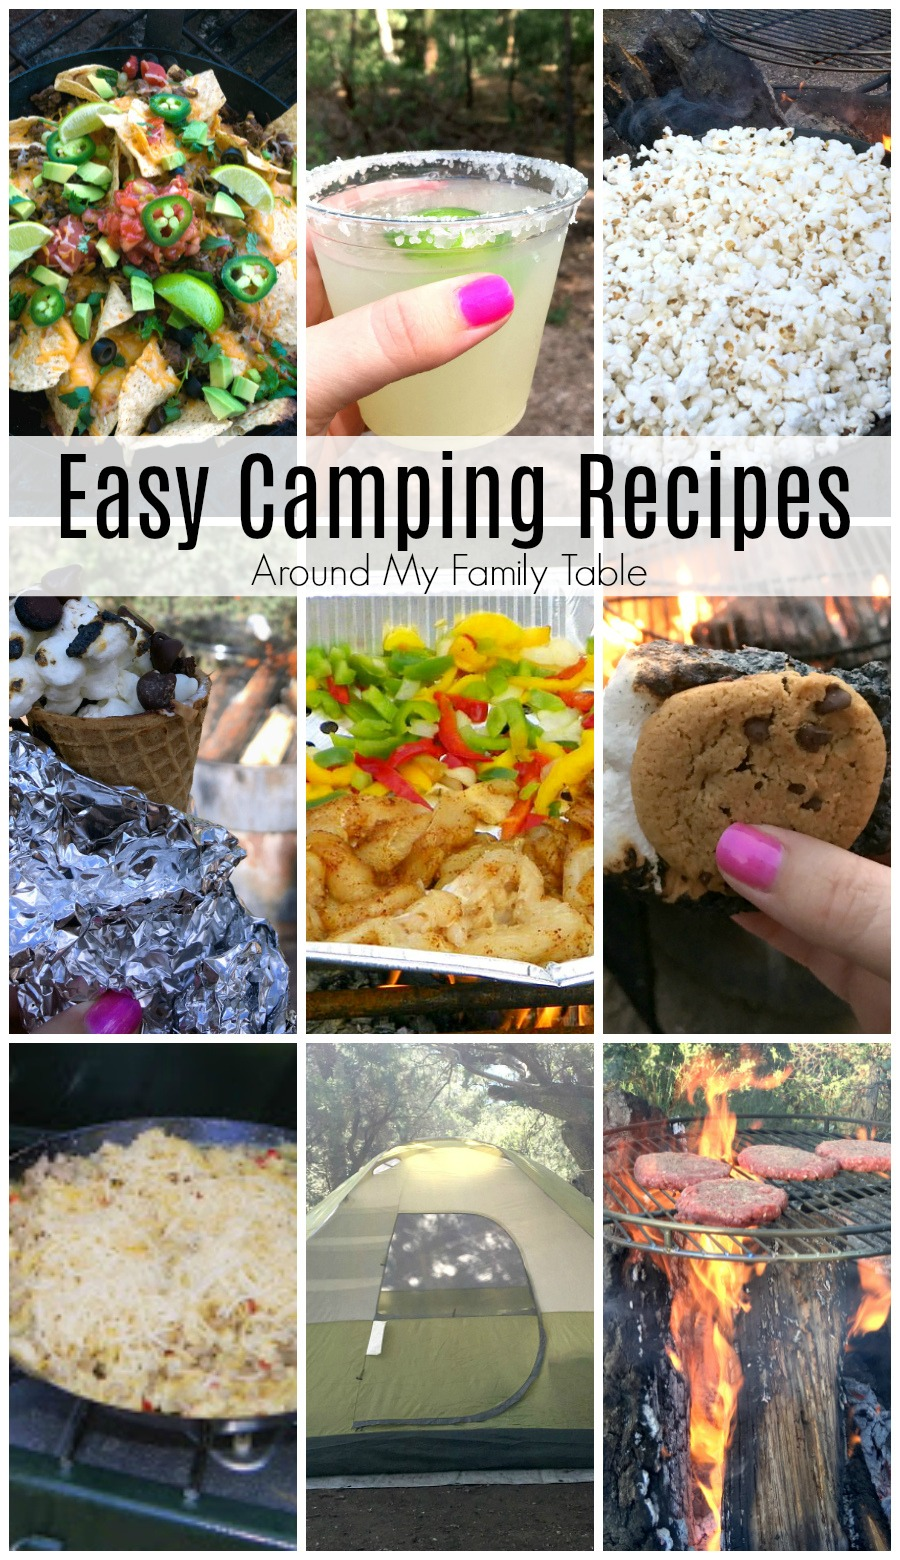 Your next family camping trip will be less stressful and awhole lot tastier with these easy camping recipes. #camping #campingrecipes #outdoorcooking